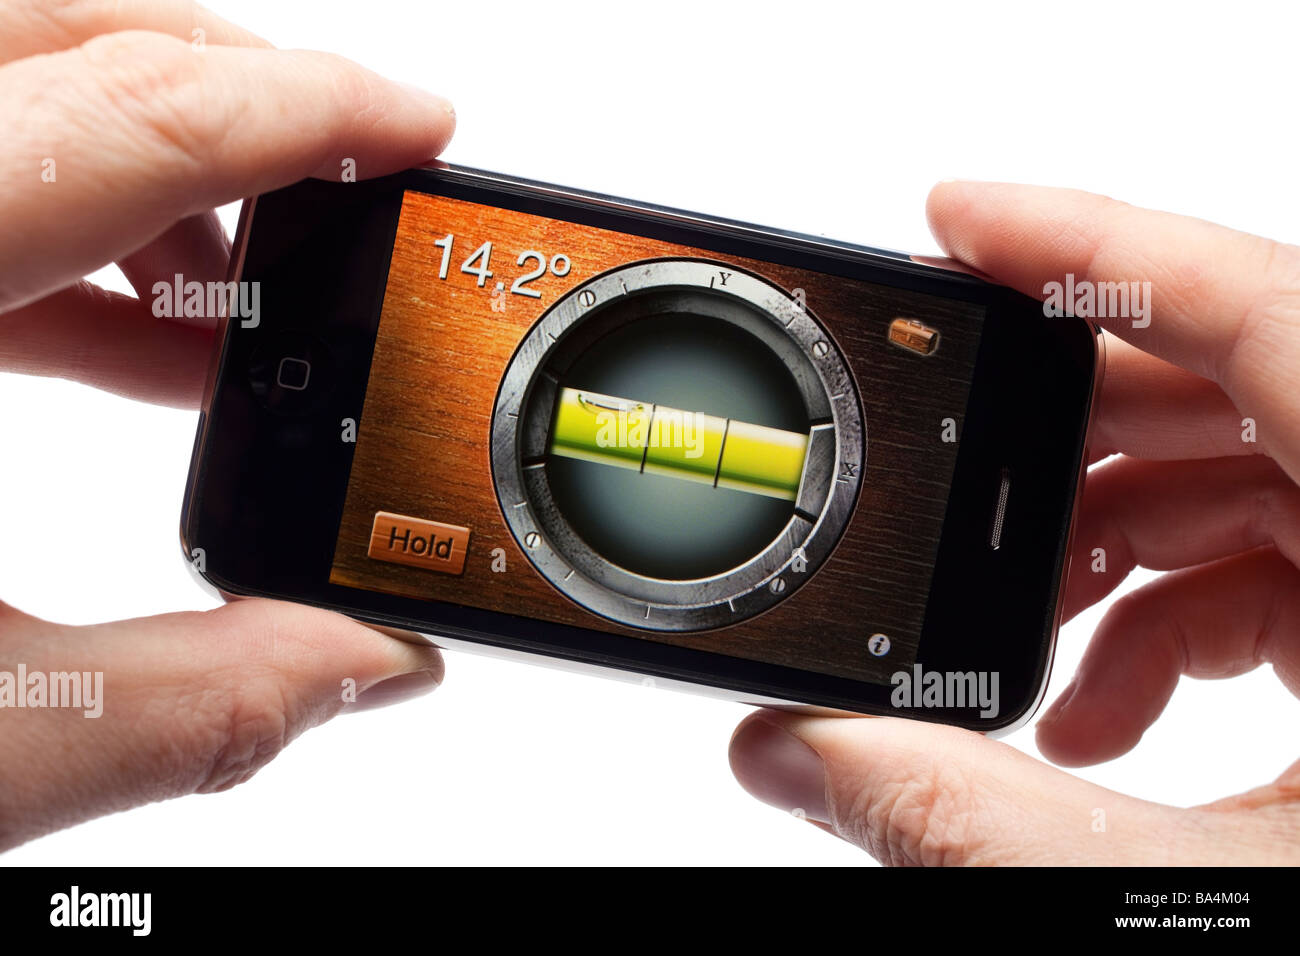 Male hands holding iPhone smartphone smart phone mobile phone using a spirit level application - Stock Image